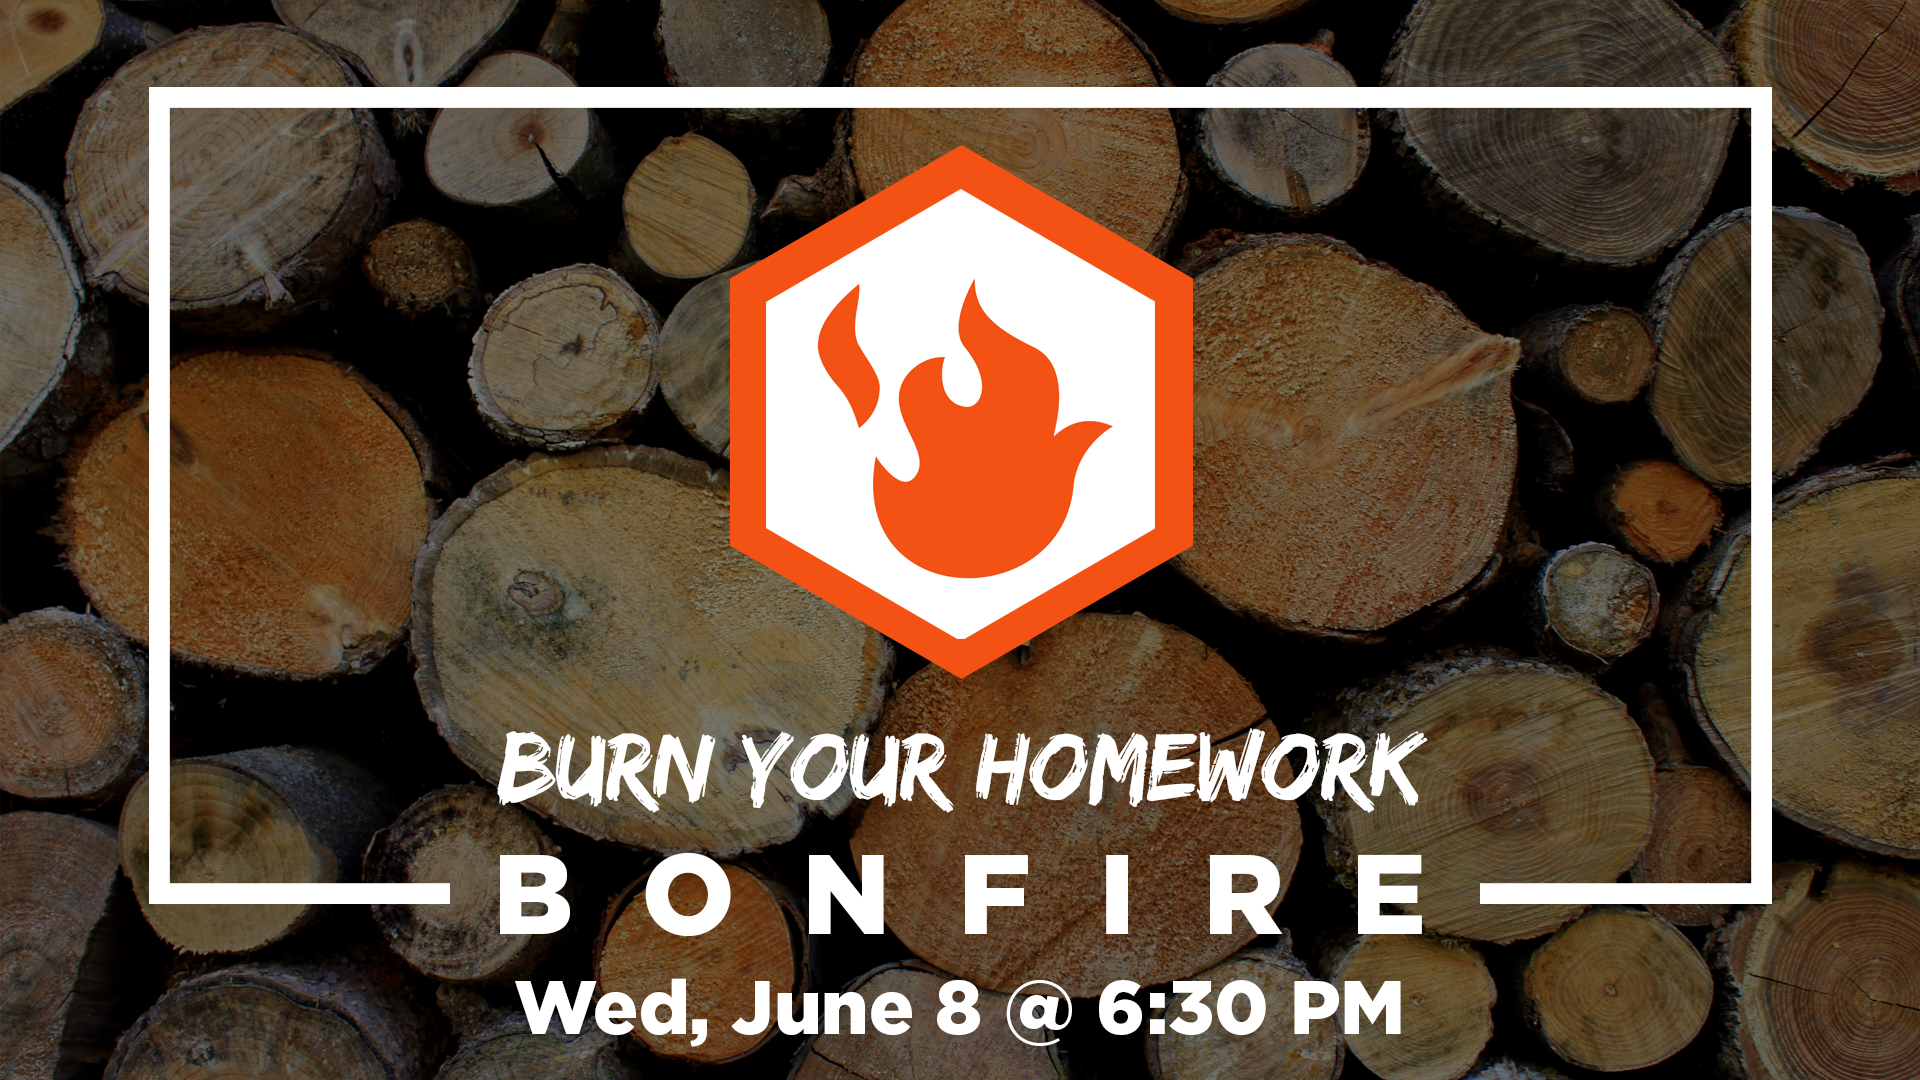 Burn Your Homework Bonfire